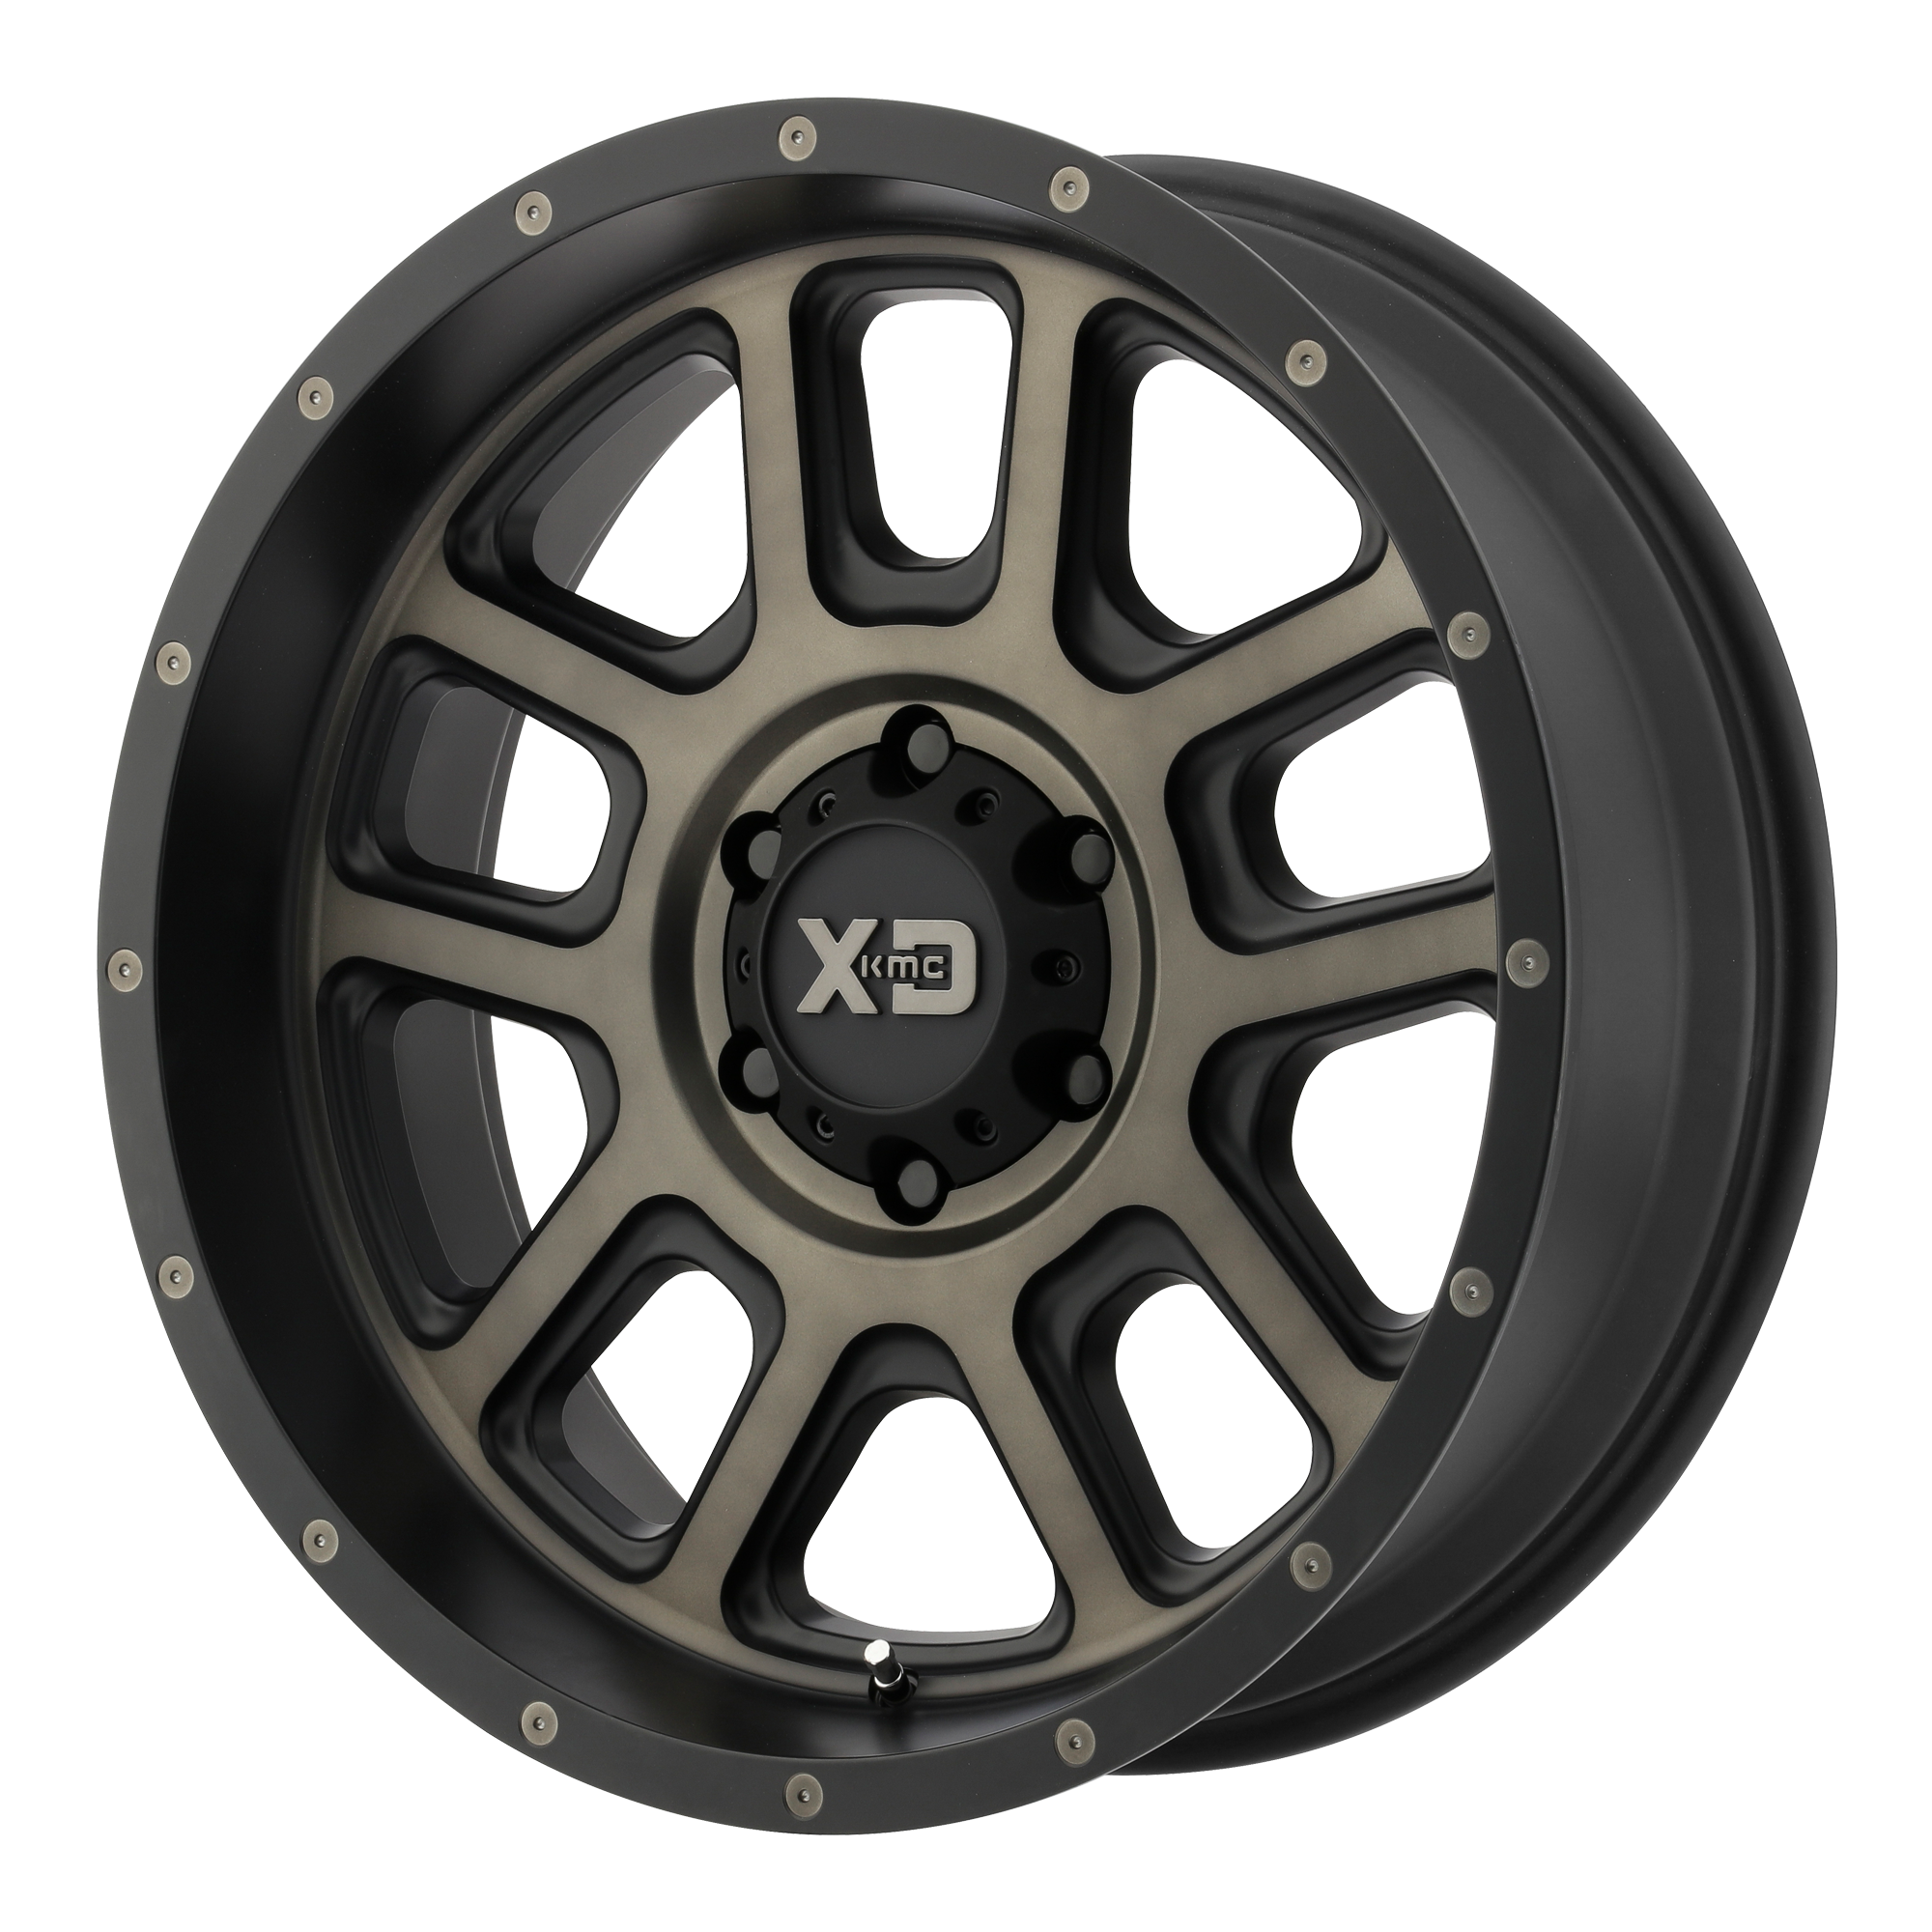 XD SERIES BY KMC WHEELS XD828 DELTA Matte Black w/ Dark Tint Clear